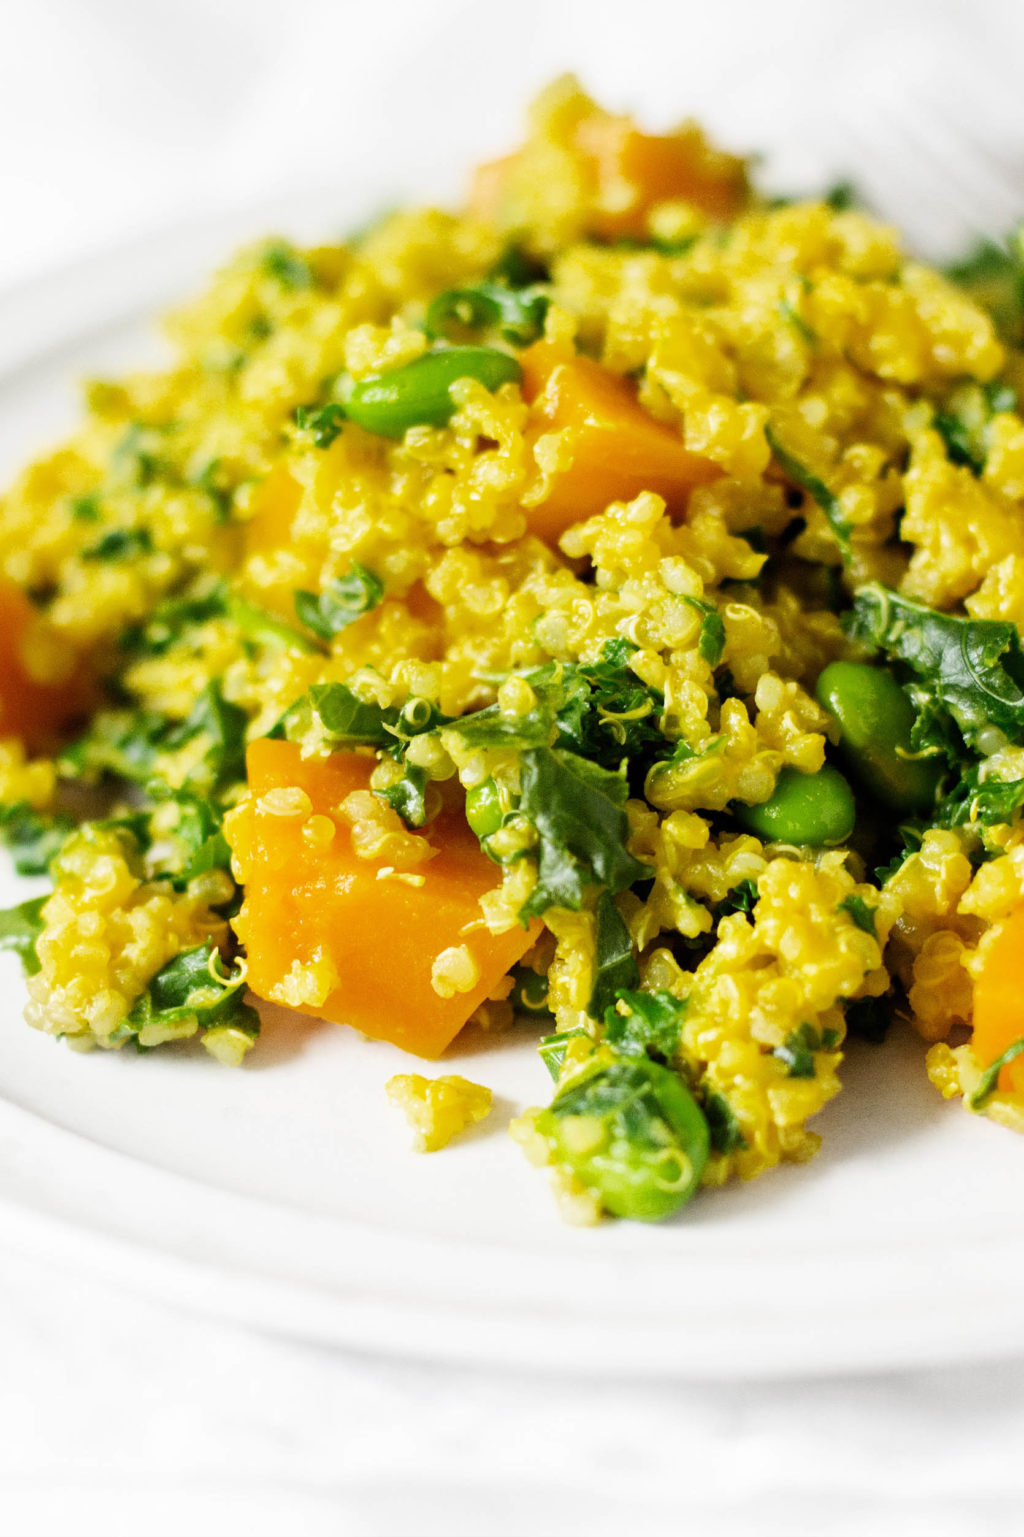 A zoomed in image of quinoa, squash, and greens, folded together with a golden colored, creamy sauce.